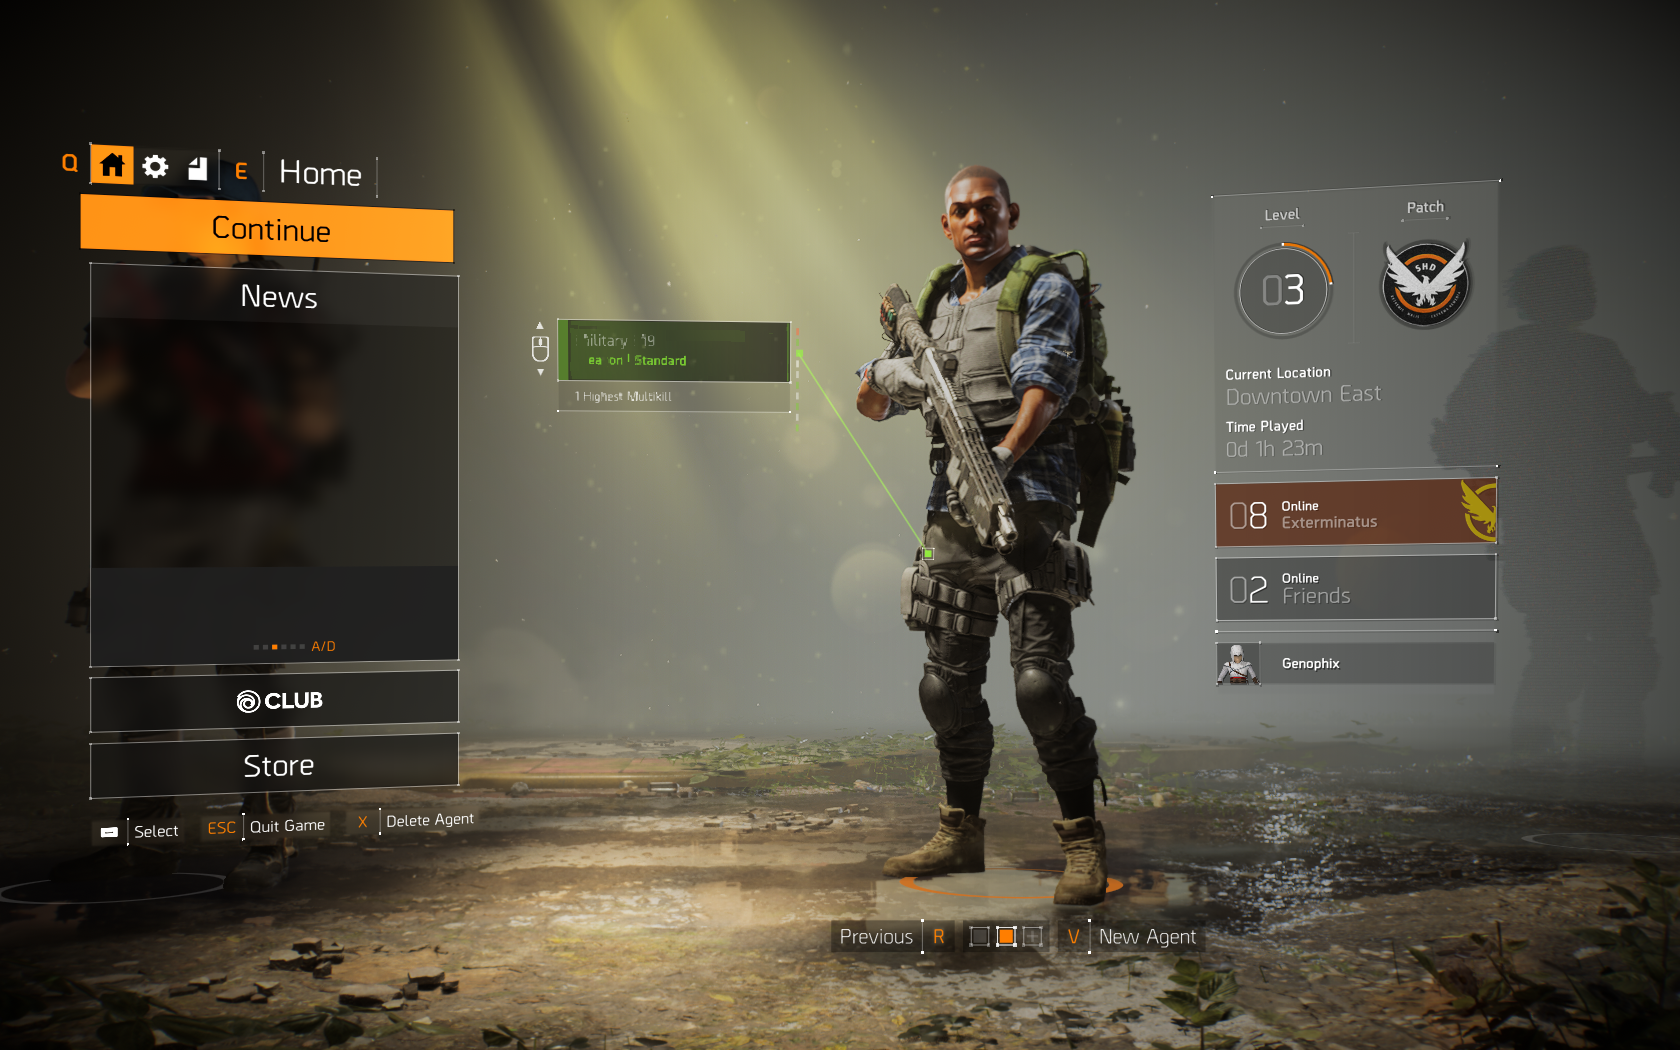 Tom Clancy's The Division 2 Screenshot 2019.03.21 - 11.47.22.41.png